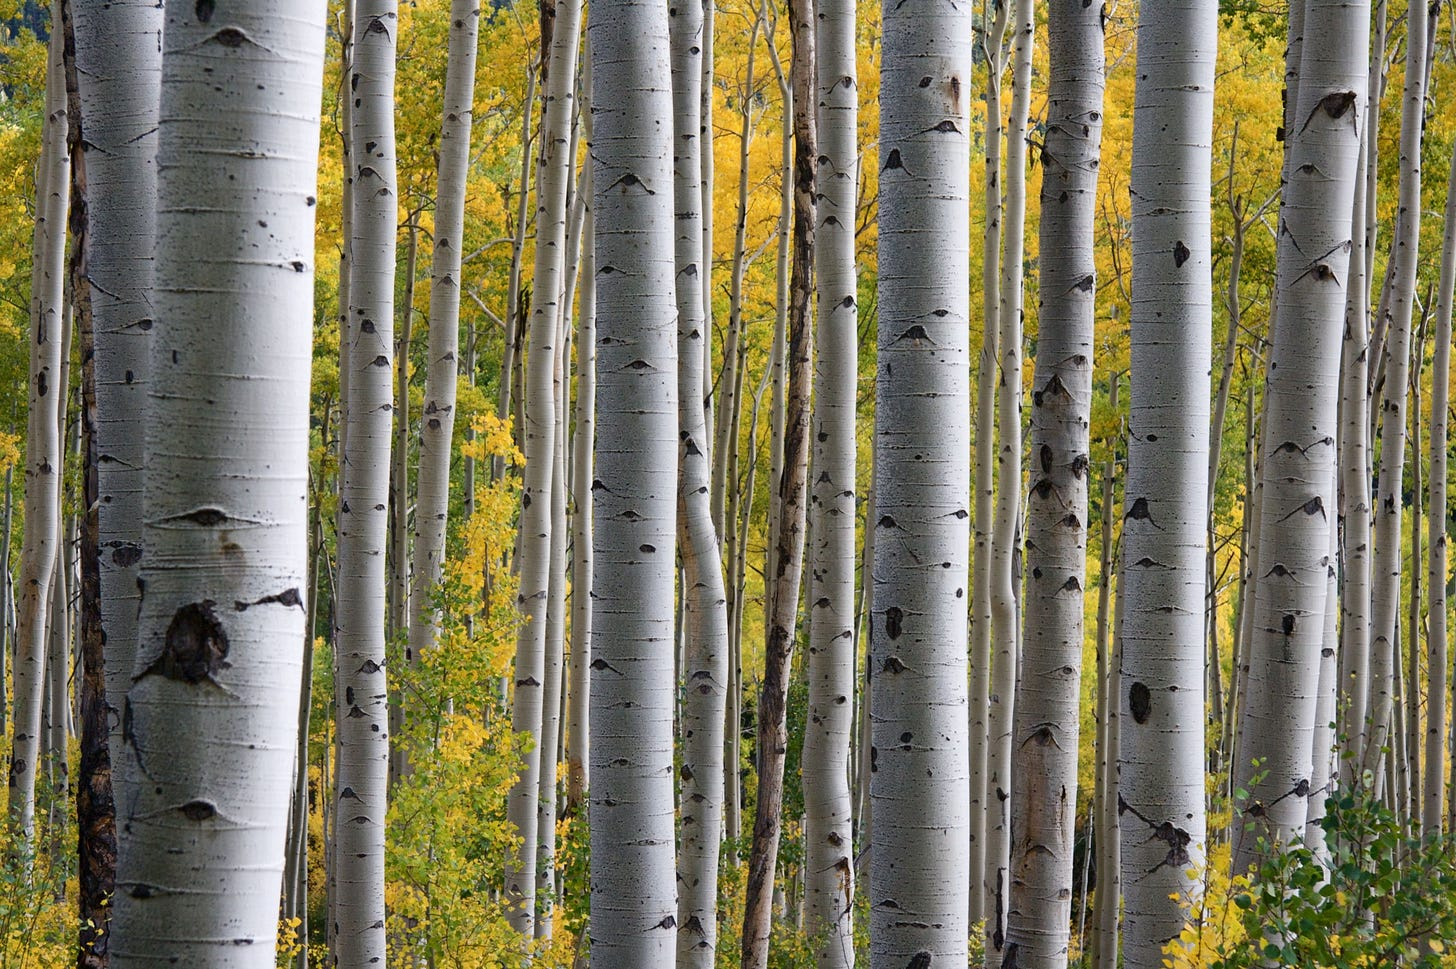 closeup image of the trunks of silver birch trees for article by Larry G. Maguire